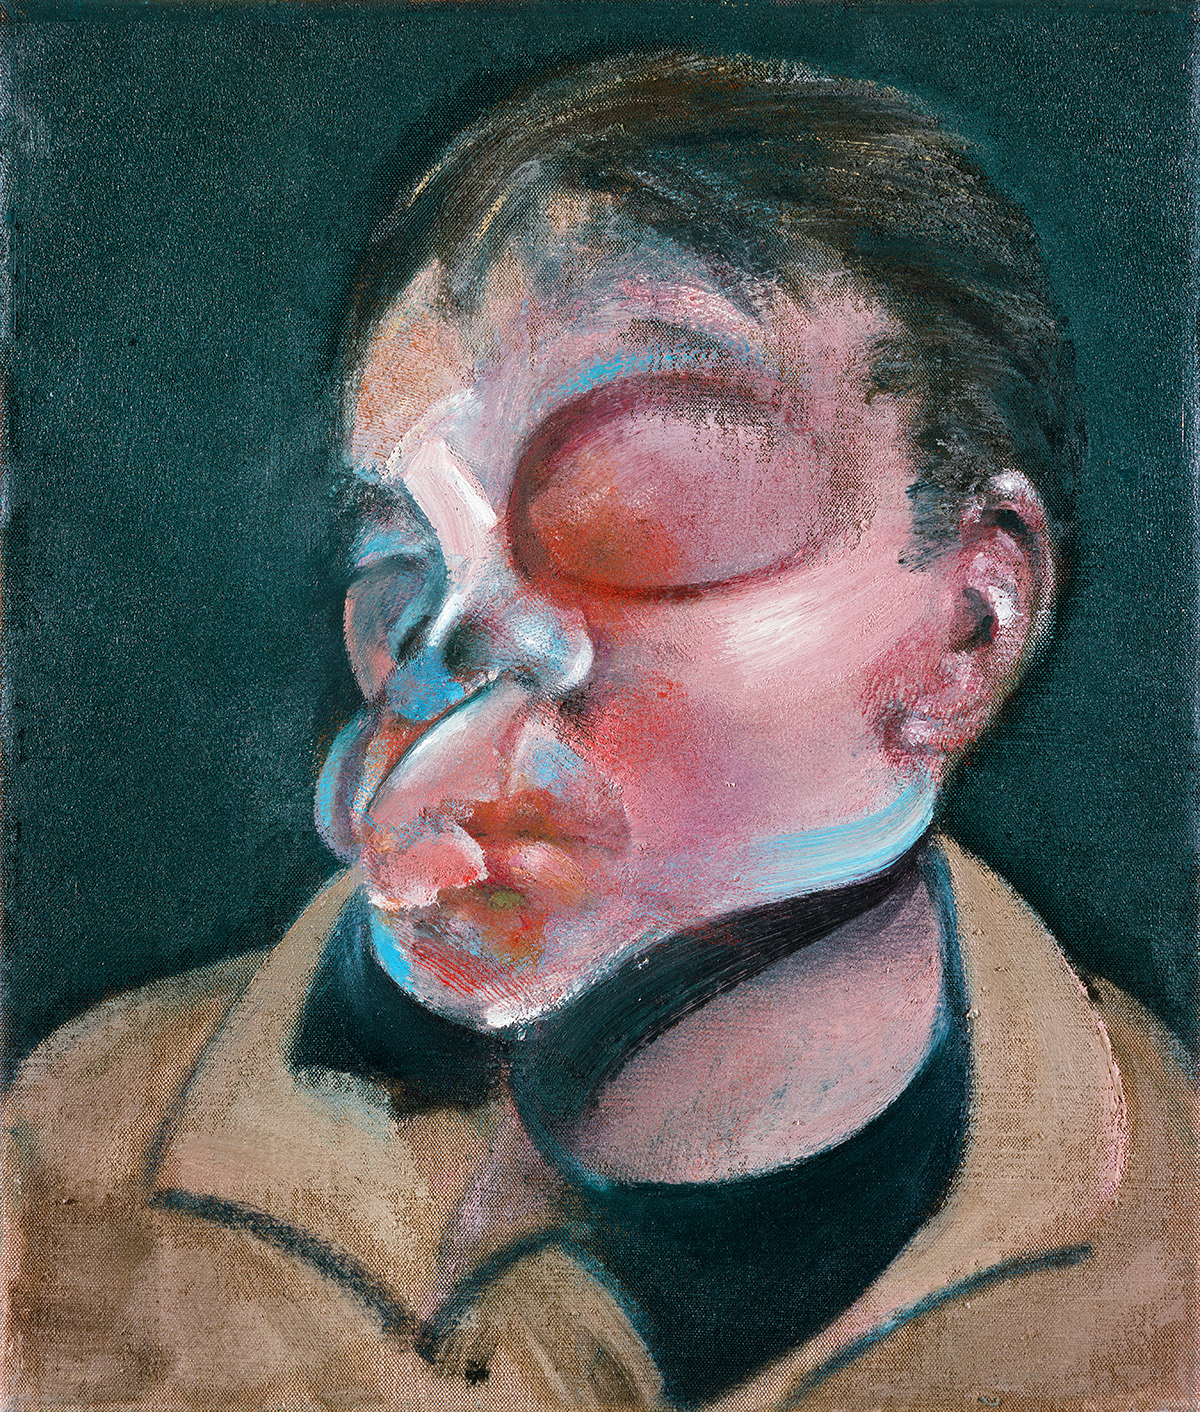 Francis Bacon, CR no 72-02. © Self- Portrait with Injured Eye, 1972. Oil on canvas.